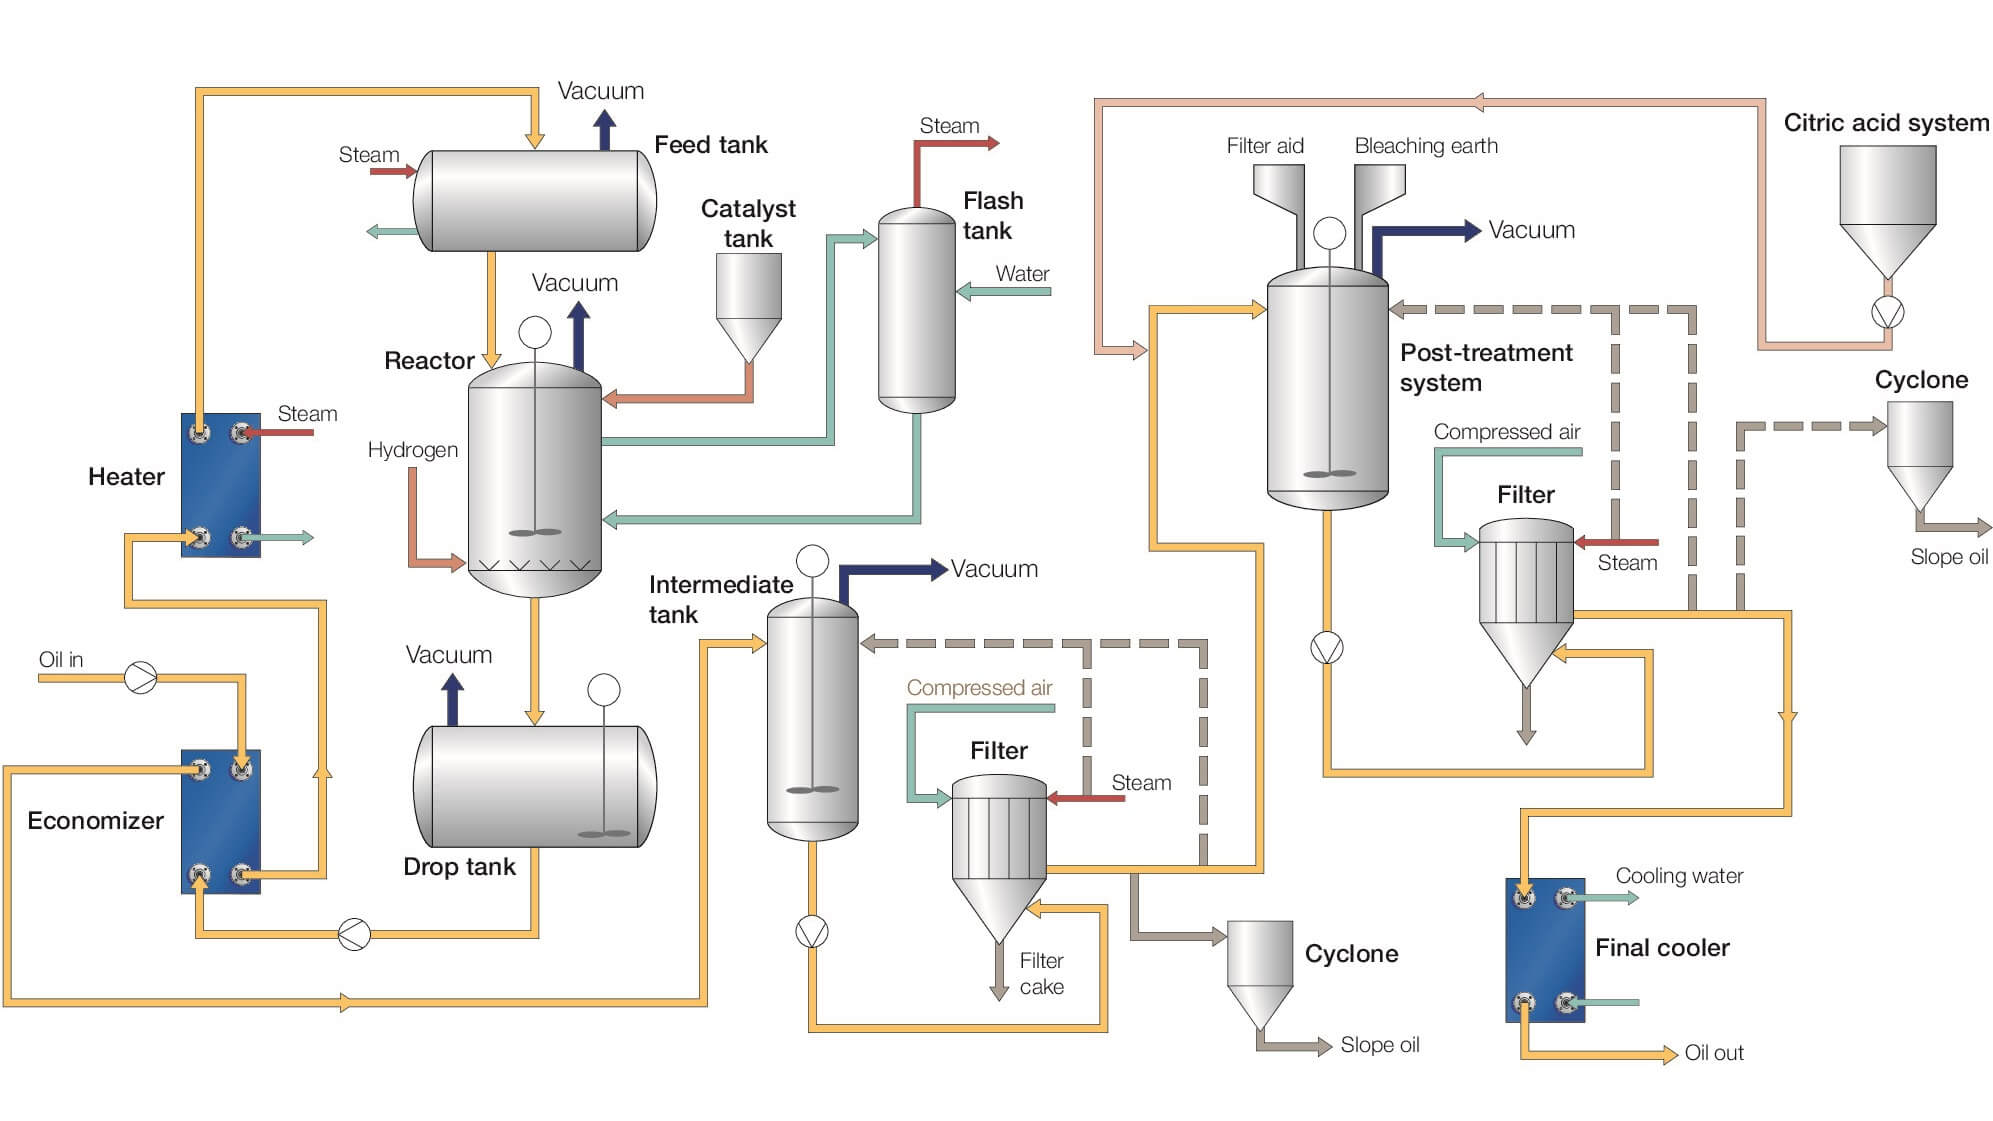 Hydrogenation process flow diagram.jpg